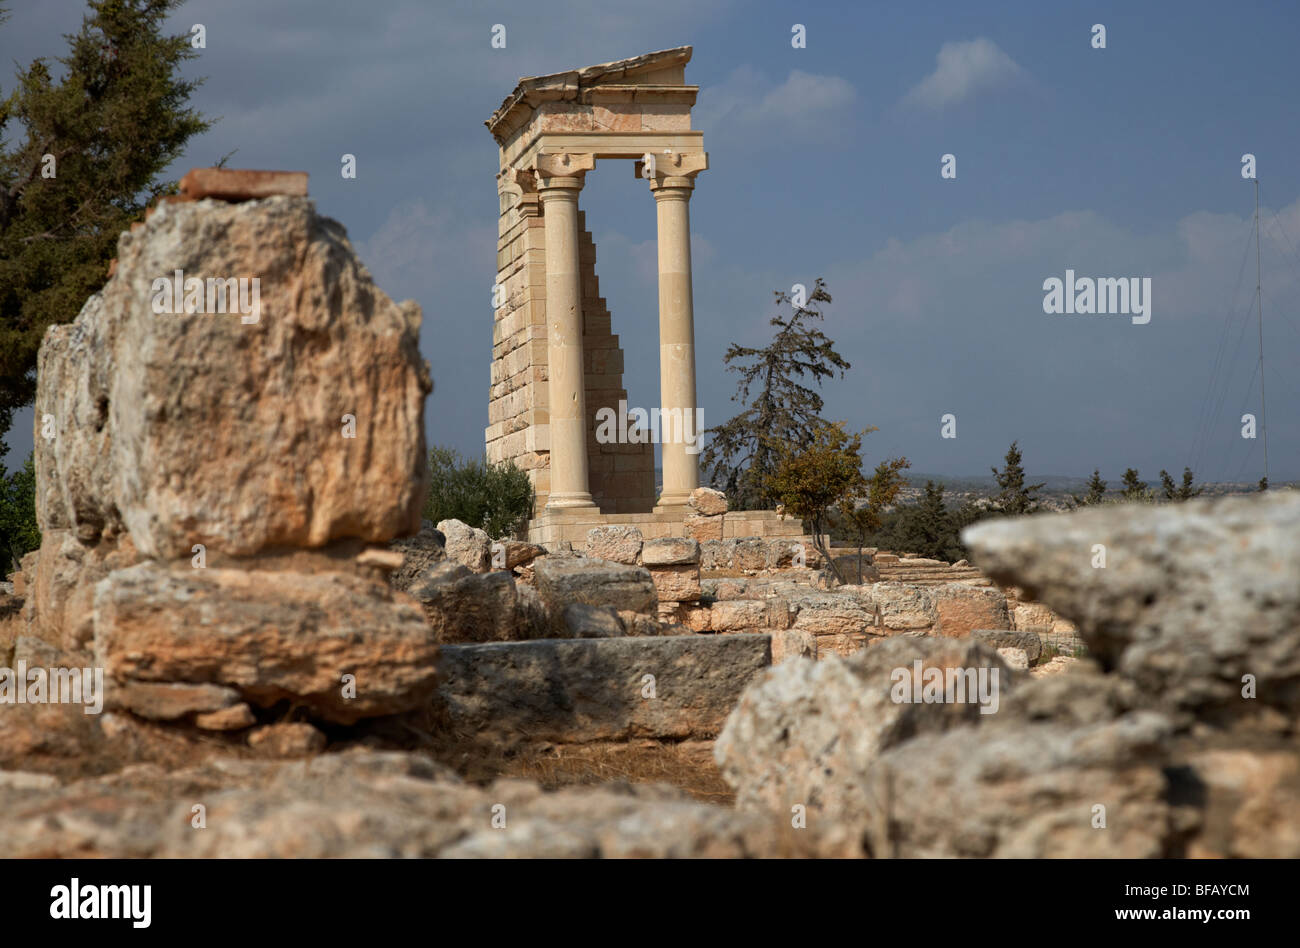 temple of apollo hylates in the sanctuary of apollon ylatis at kourion archeological site republic of cyprus europe - Stock Image